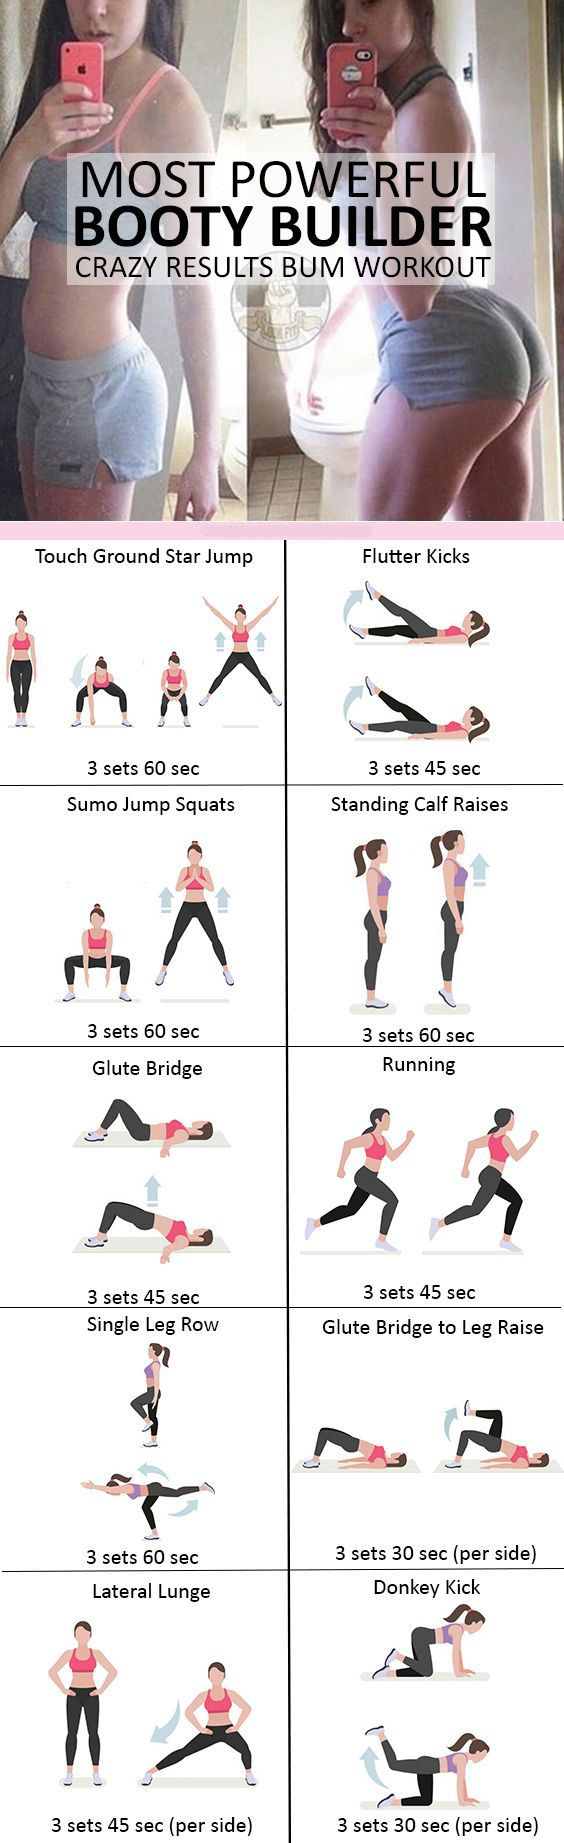 Most Powerful Booty Builder Crazy Results Bum Workout #weightloss #loseweight #weightlossworkout #buttworkout #booty #workout #Fitness #exercise https://www.youtube.com/watch?v=Q96gA6-kRZk